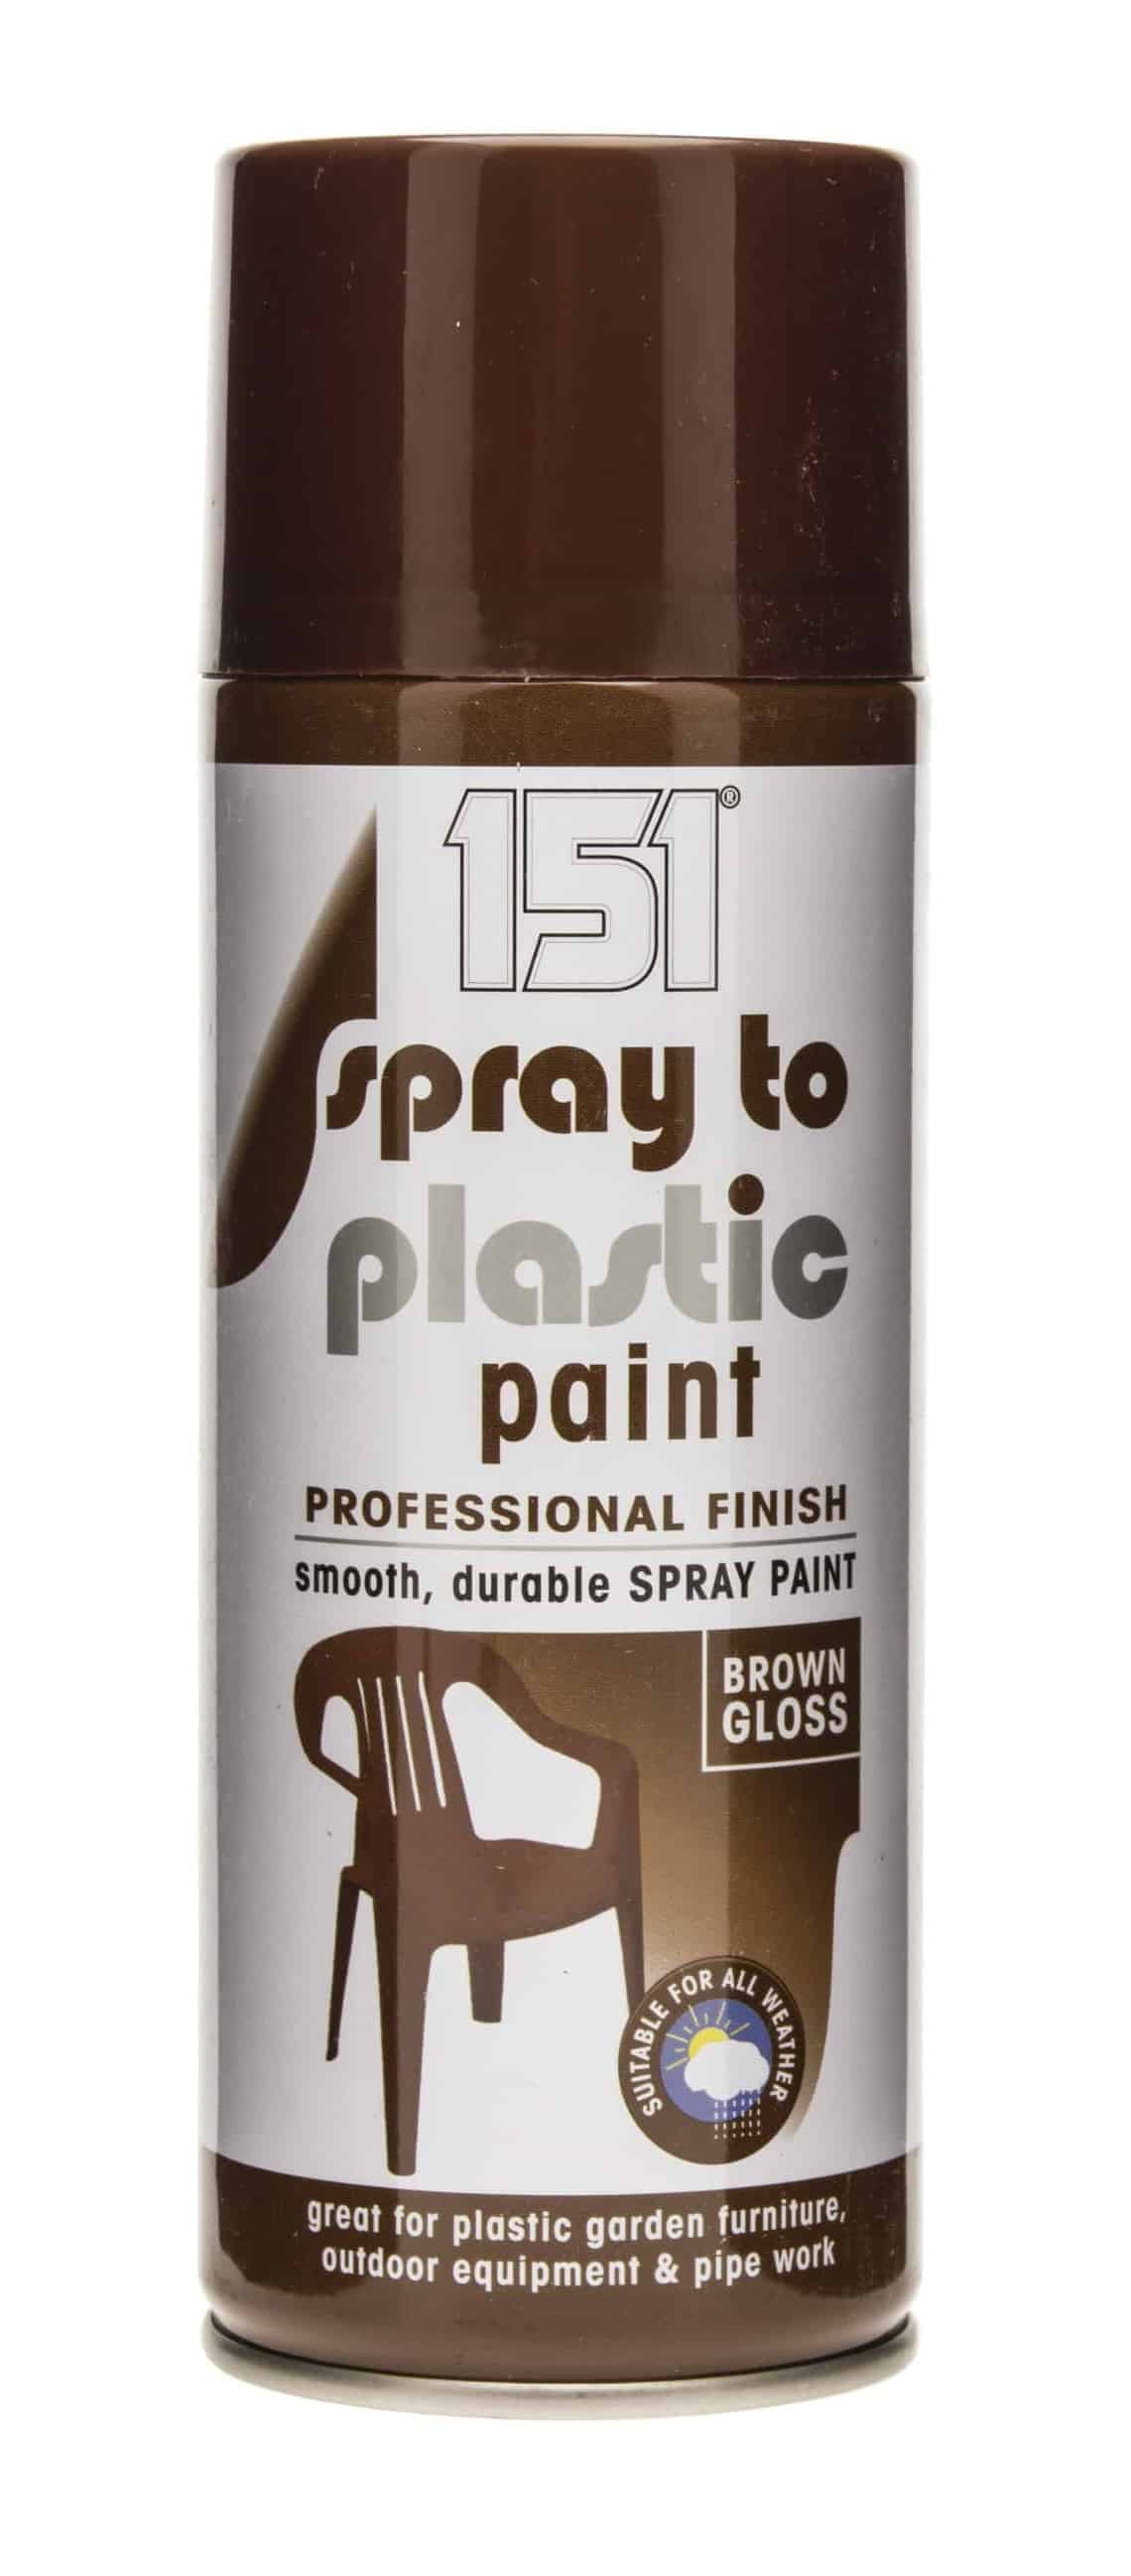 151 Products Spray To Plastic Paint-Brown Gloss 400Ml